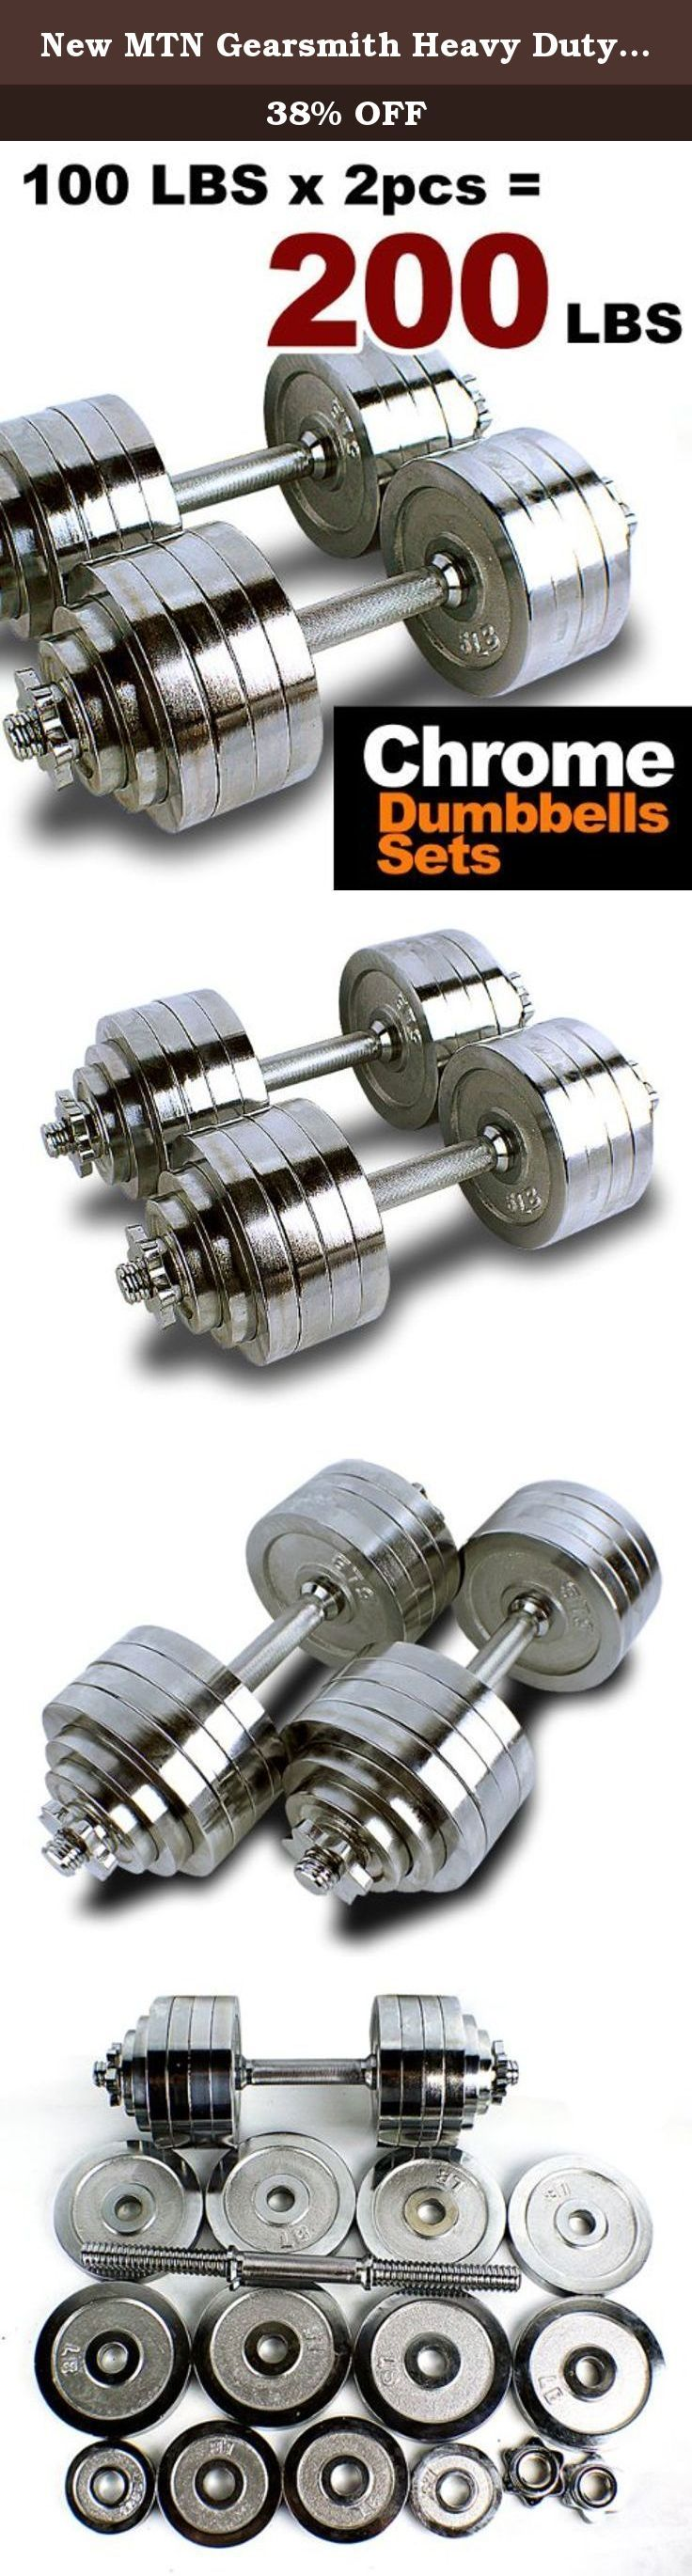 New MTN Gearsmith Heavy Duty Adjustable Cast Iron Chrome Weight Dumbbell Set Dumbbells 52.5 100 105 200 lbs (Silver-Chrome-Coated, 200 LB). This special sales is for various style and size of the adjustable dumbbell kit (52.5 lbs, 100 lbs , 105 lbs or 200 lbs). Not everyone who is interested in getting a better body through strength training has the necessary room in their home for a dozen or more sets of dumbbells. This adjustable and versatile dumbbell kit is small, convenient, and easy…